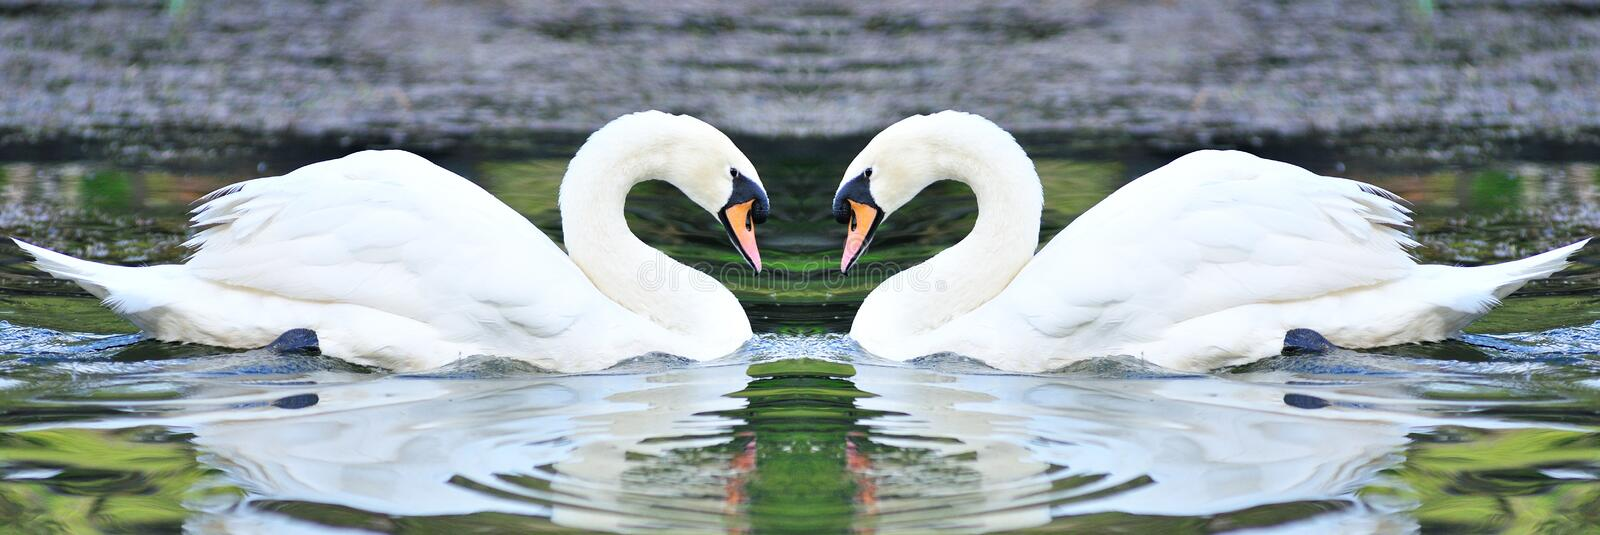 Twin white swans floating in lake stock image